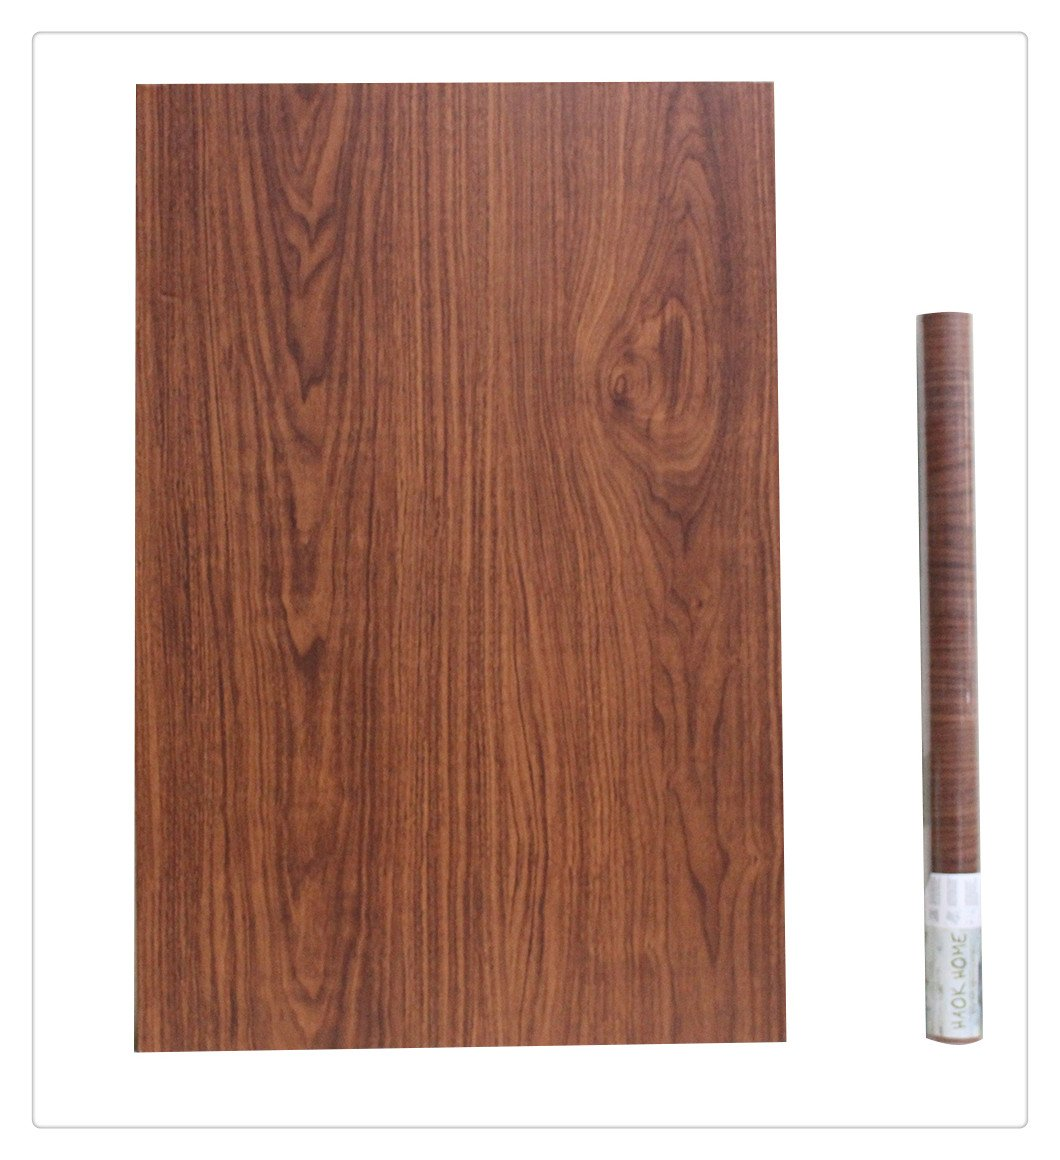 HAOKHOME 2604 Middle Brown Wood Contact Paper 17.7'' x 9.8ft Decorative Self-Adhesive Film,Wood Grain Shelf and Drawer Liner Table Door Sticker